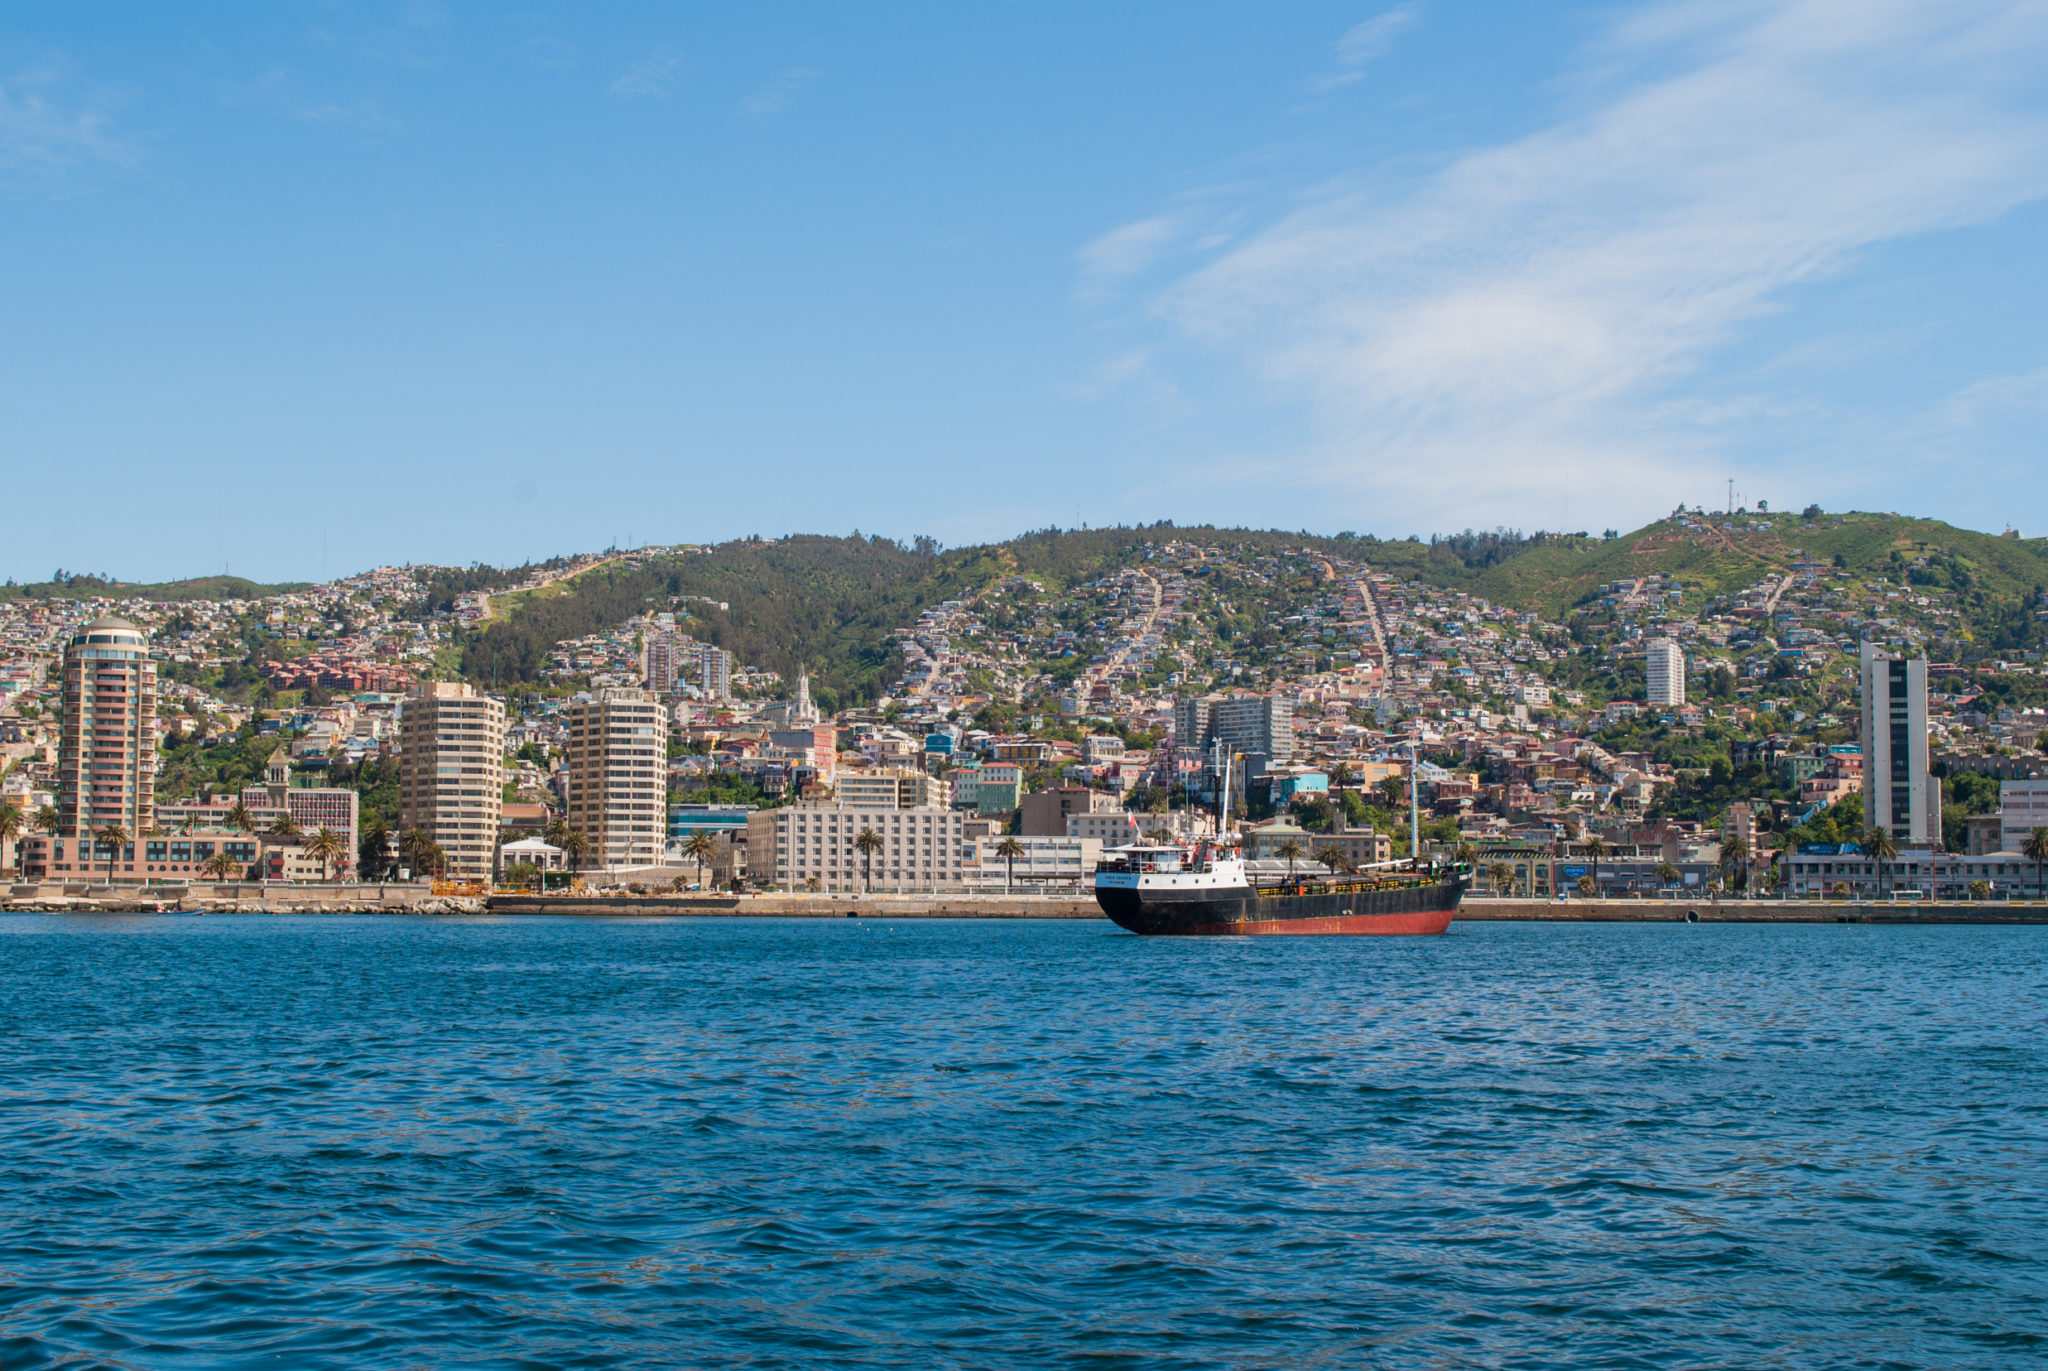 Harbor Tour of Valparaiso, Chile